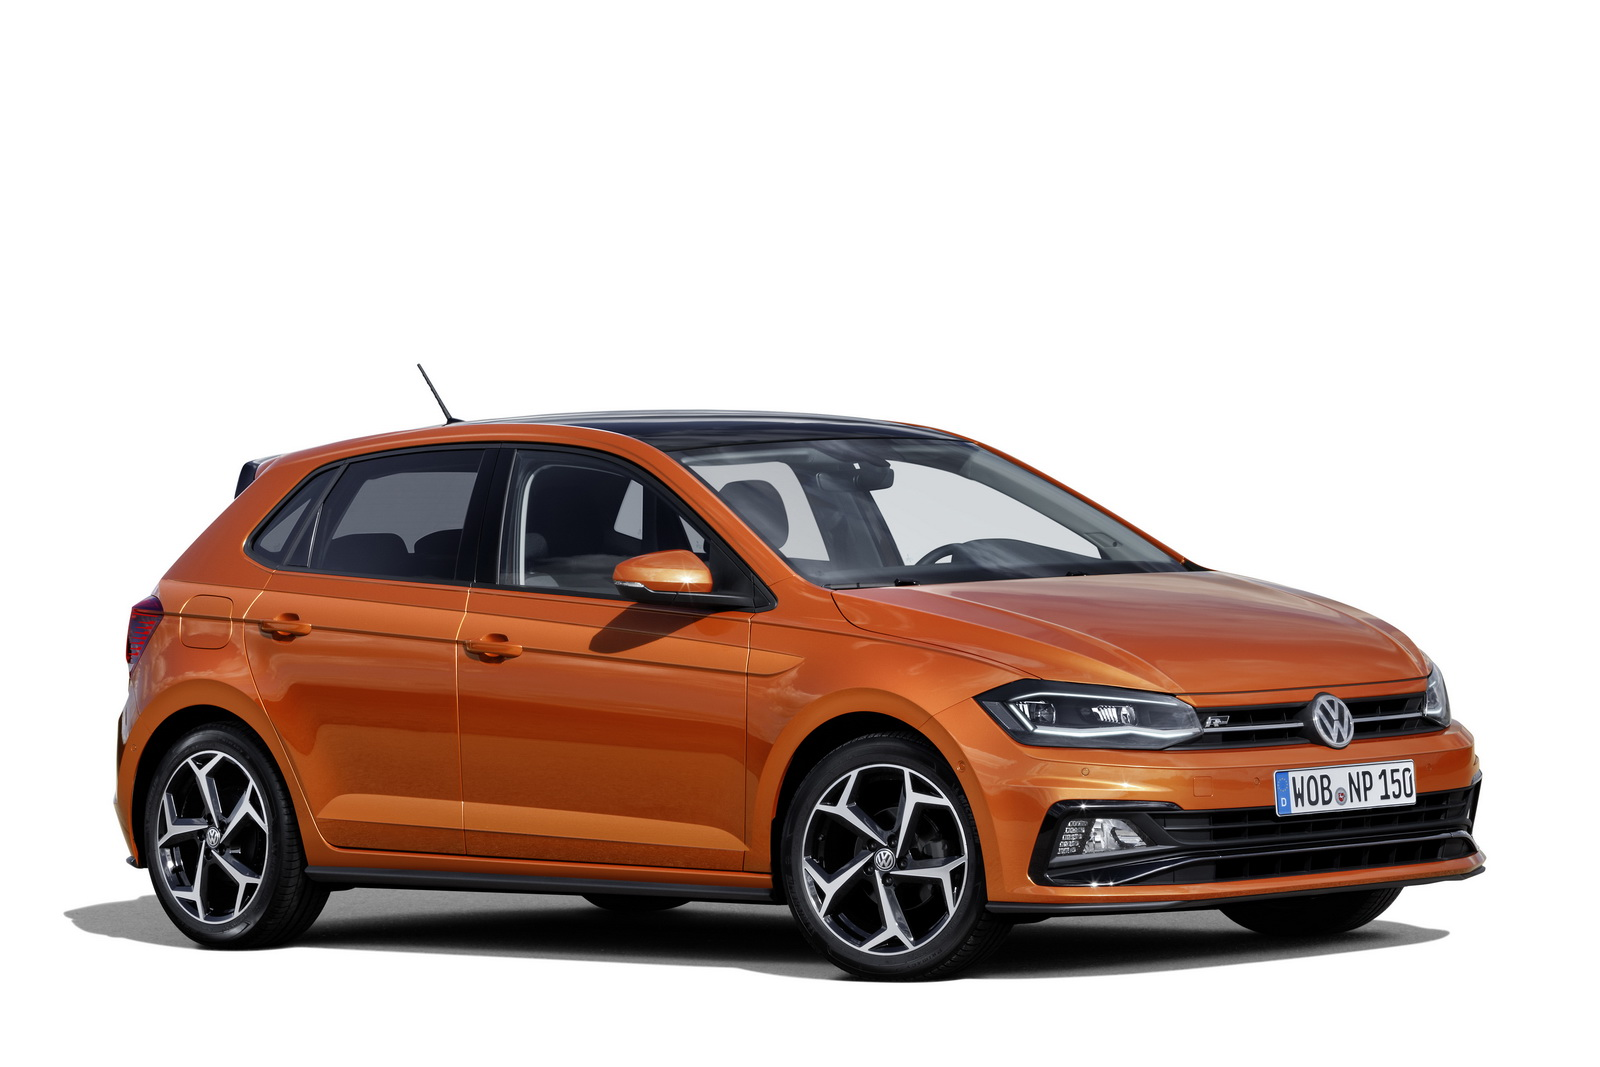 Volkswagen Polo and Polo GTI 2018 (12)